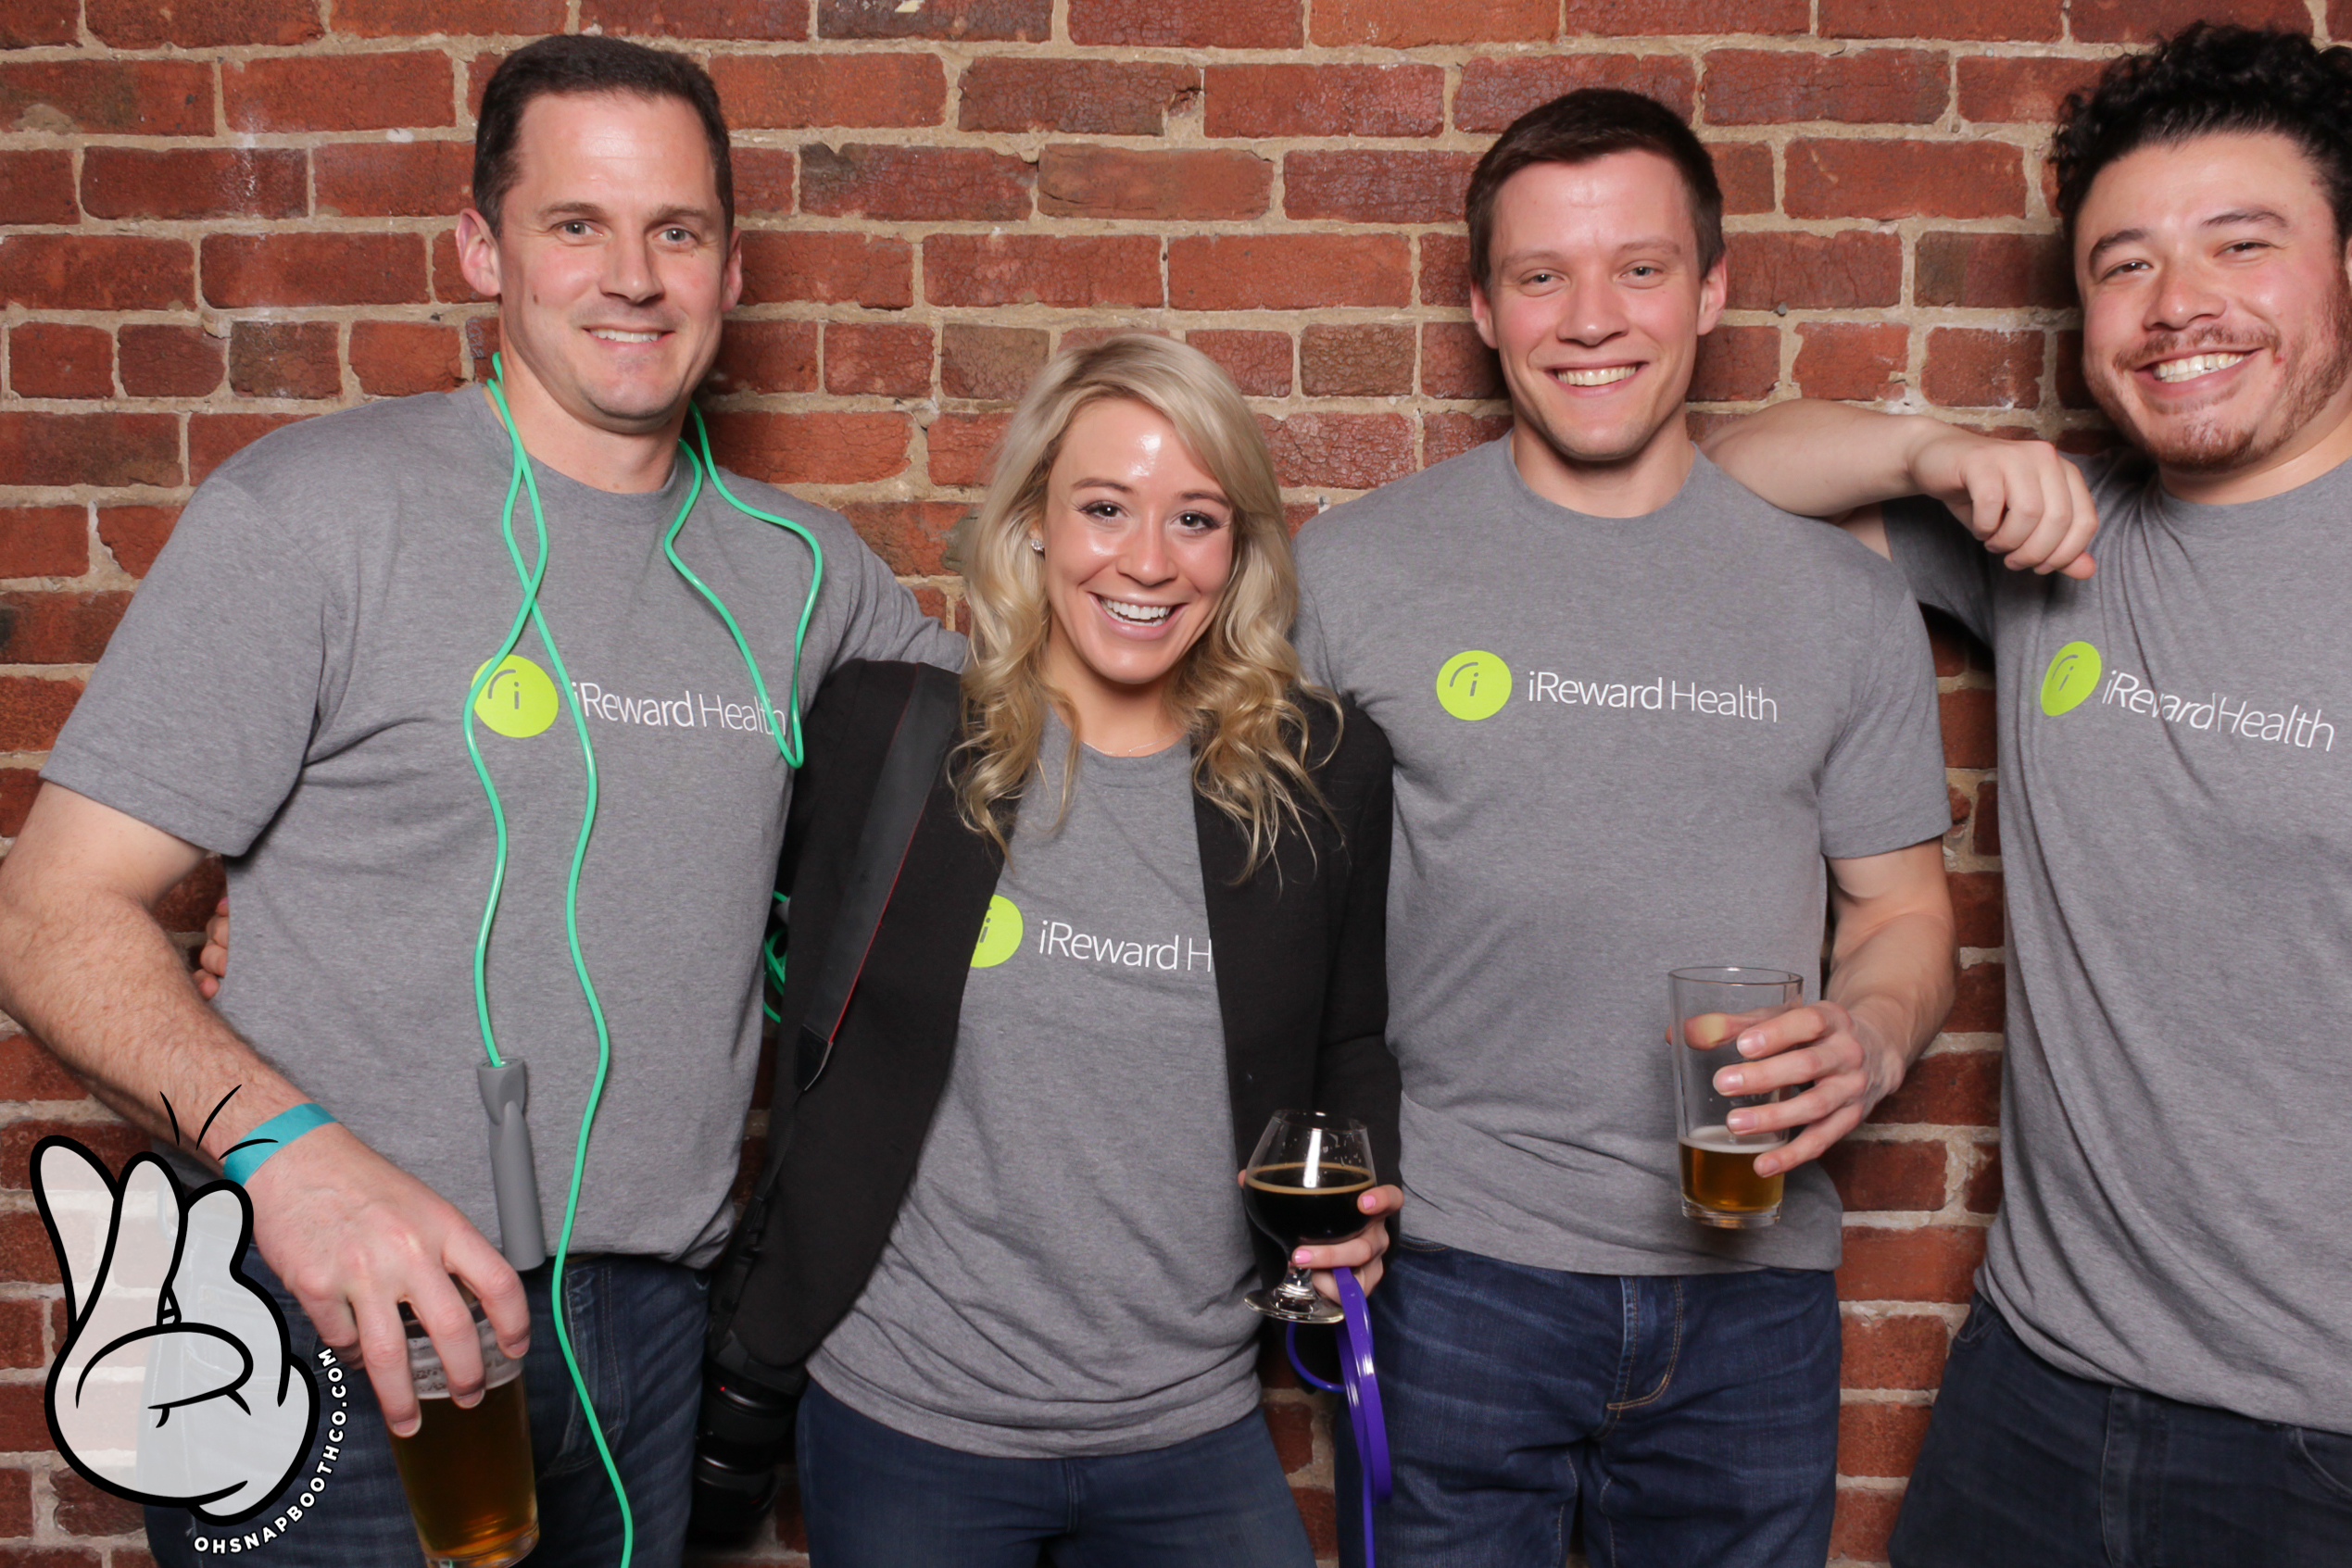 iReward Health's team at Drunk User Testing